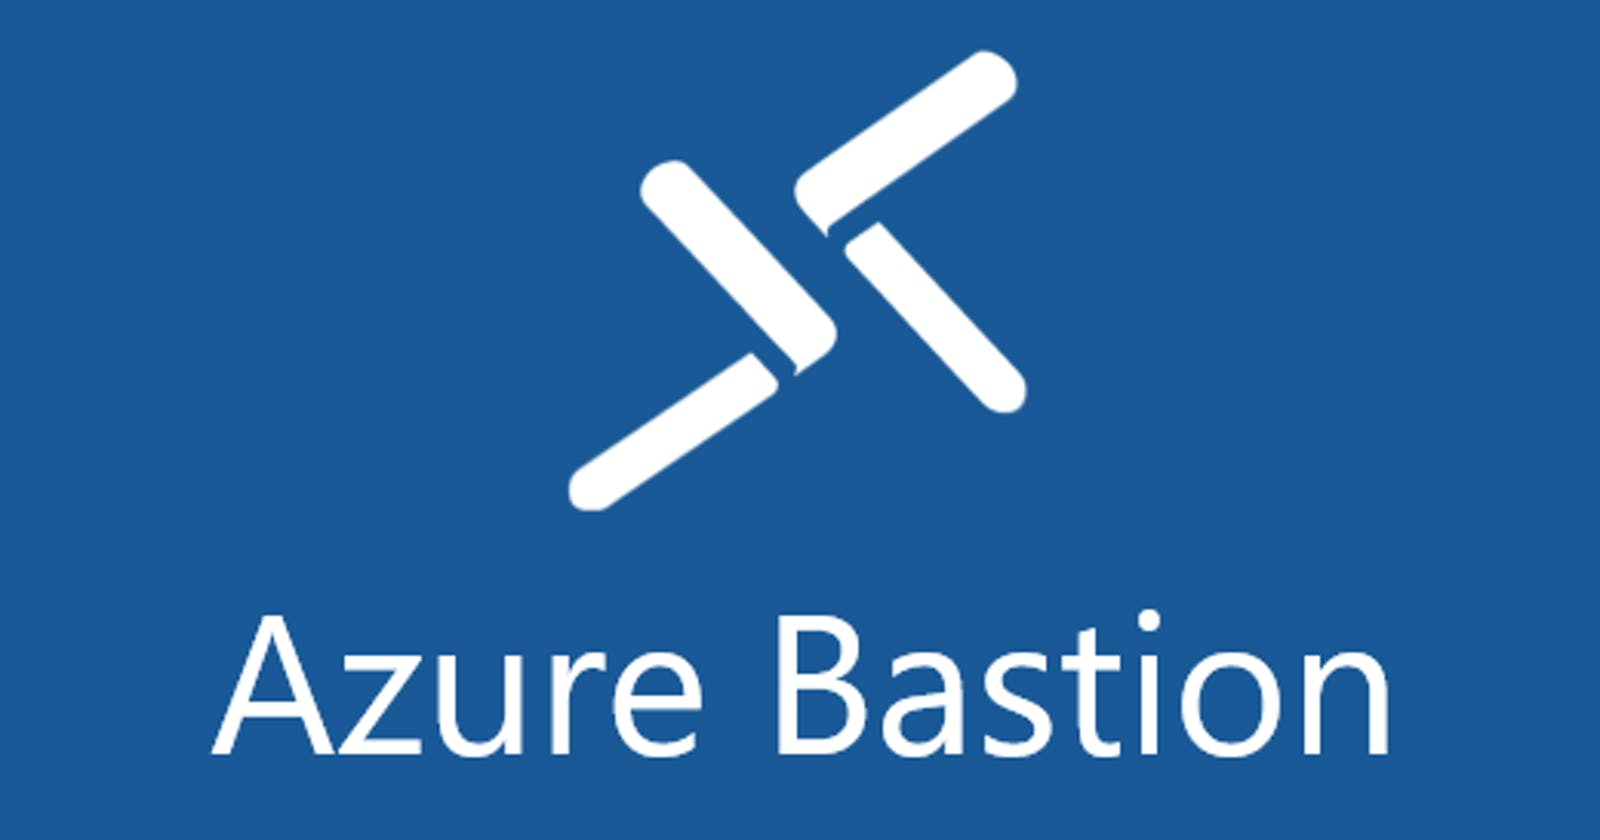 Getting Started With Azure Bastion